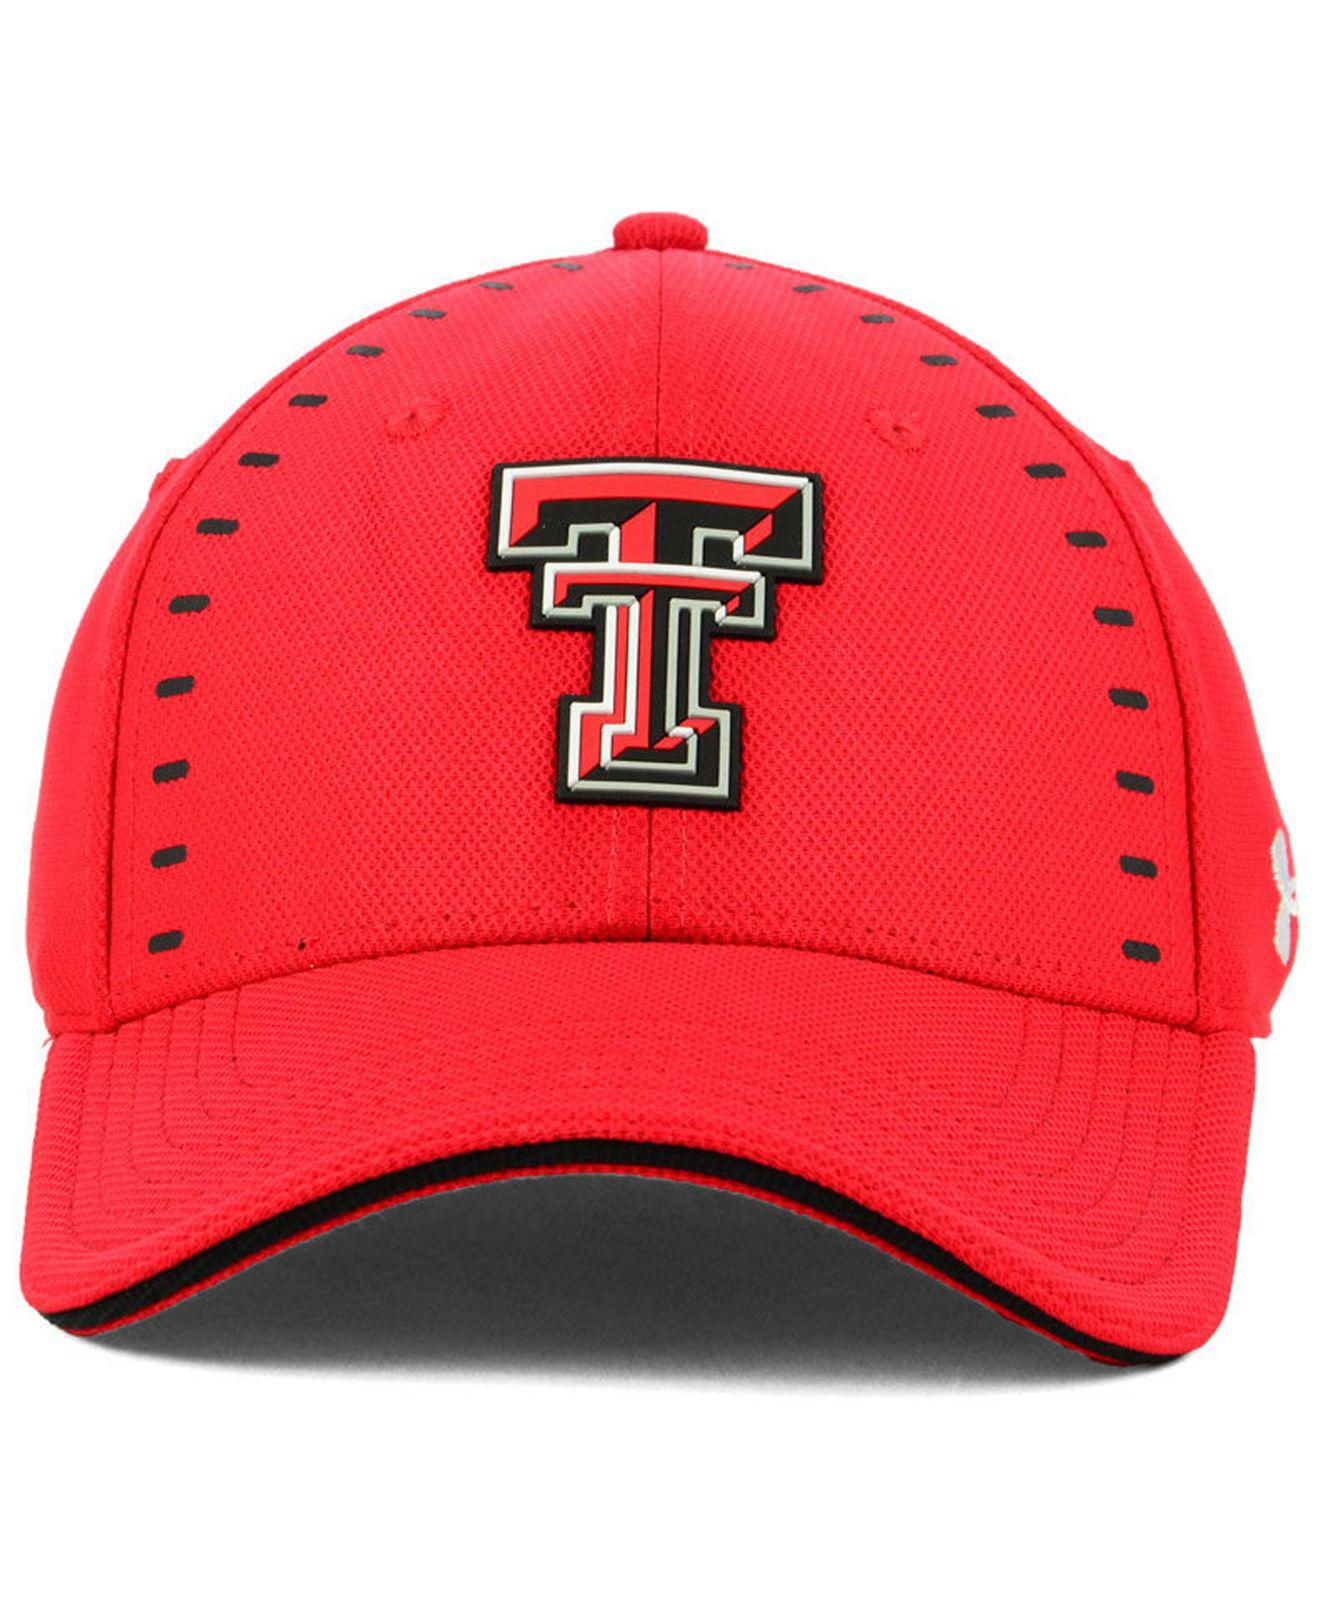 innovative design 6be1e f9d03 ... discount code for lyst under armour texas tech red raiders blitzing  flex stretch fitted cap in ...